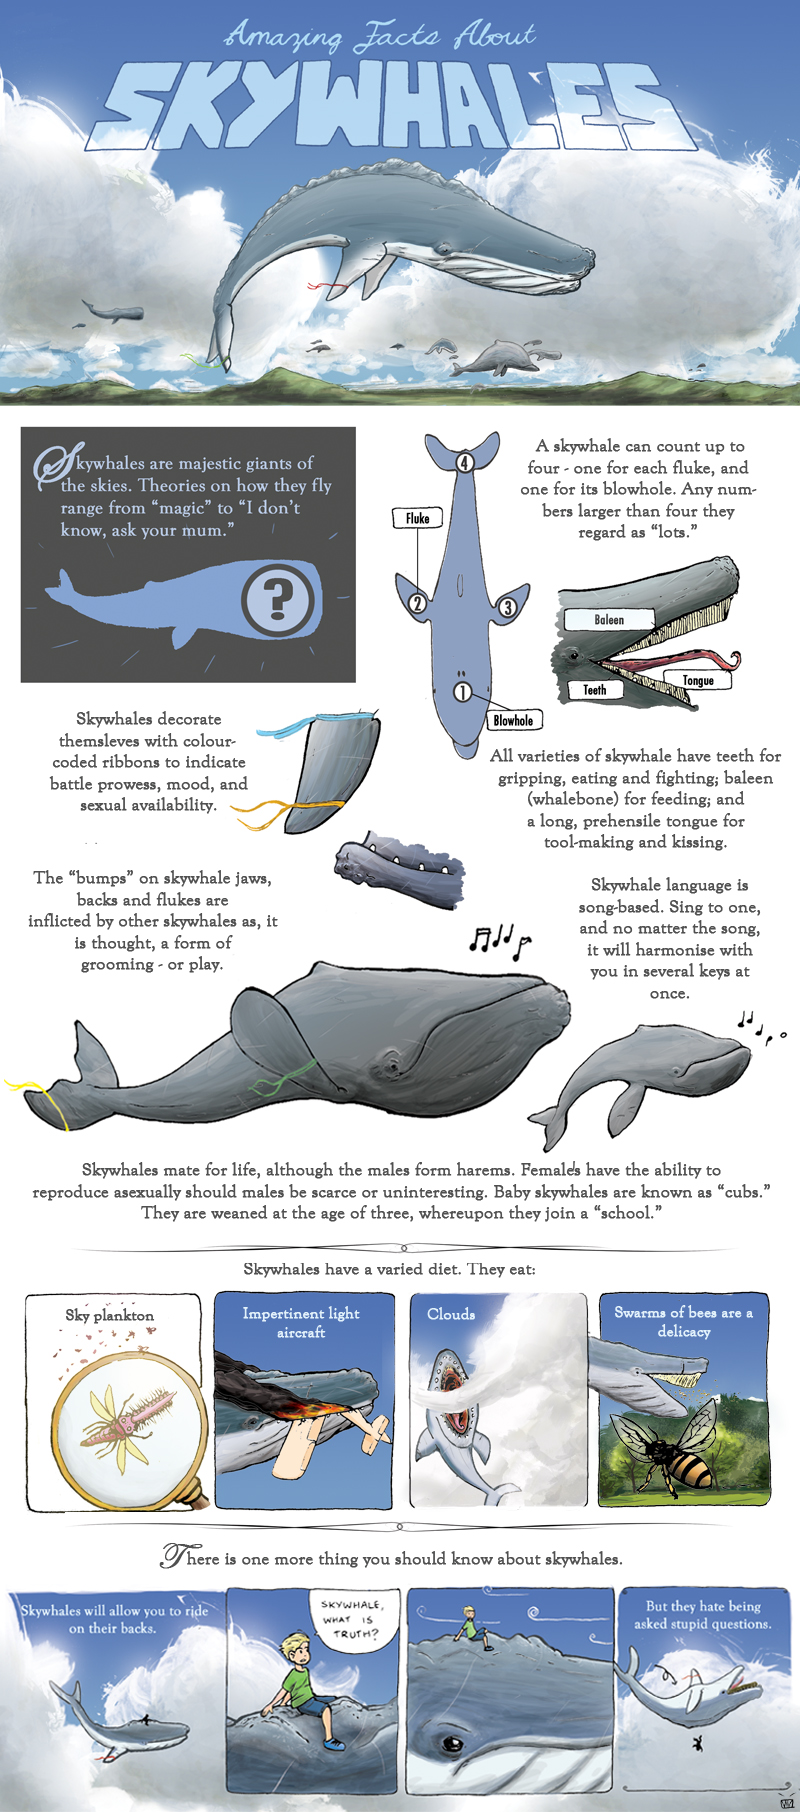 Amazing Facts About Skywhales